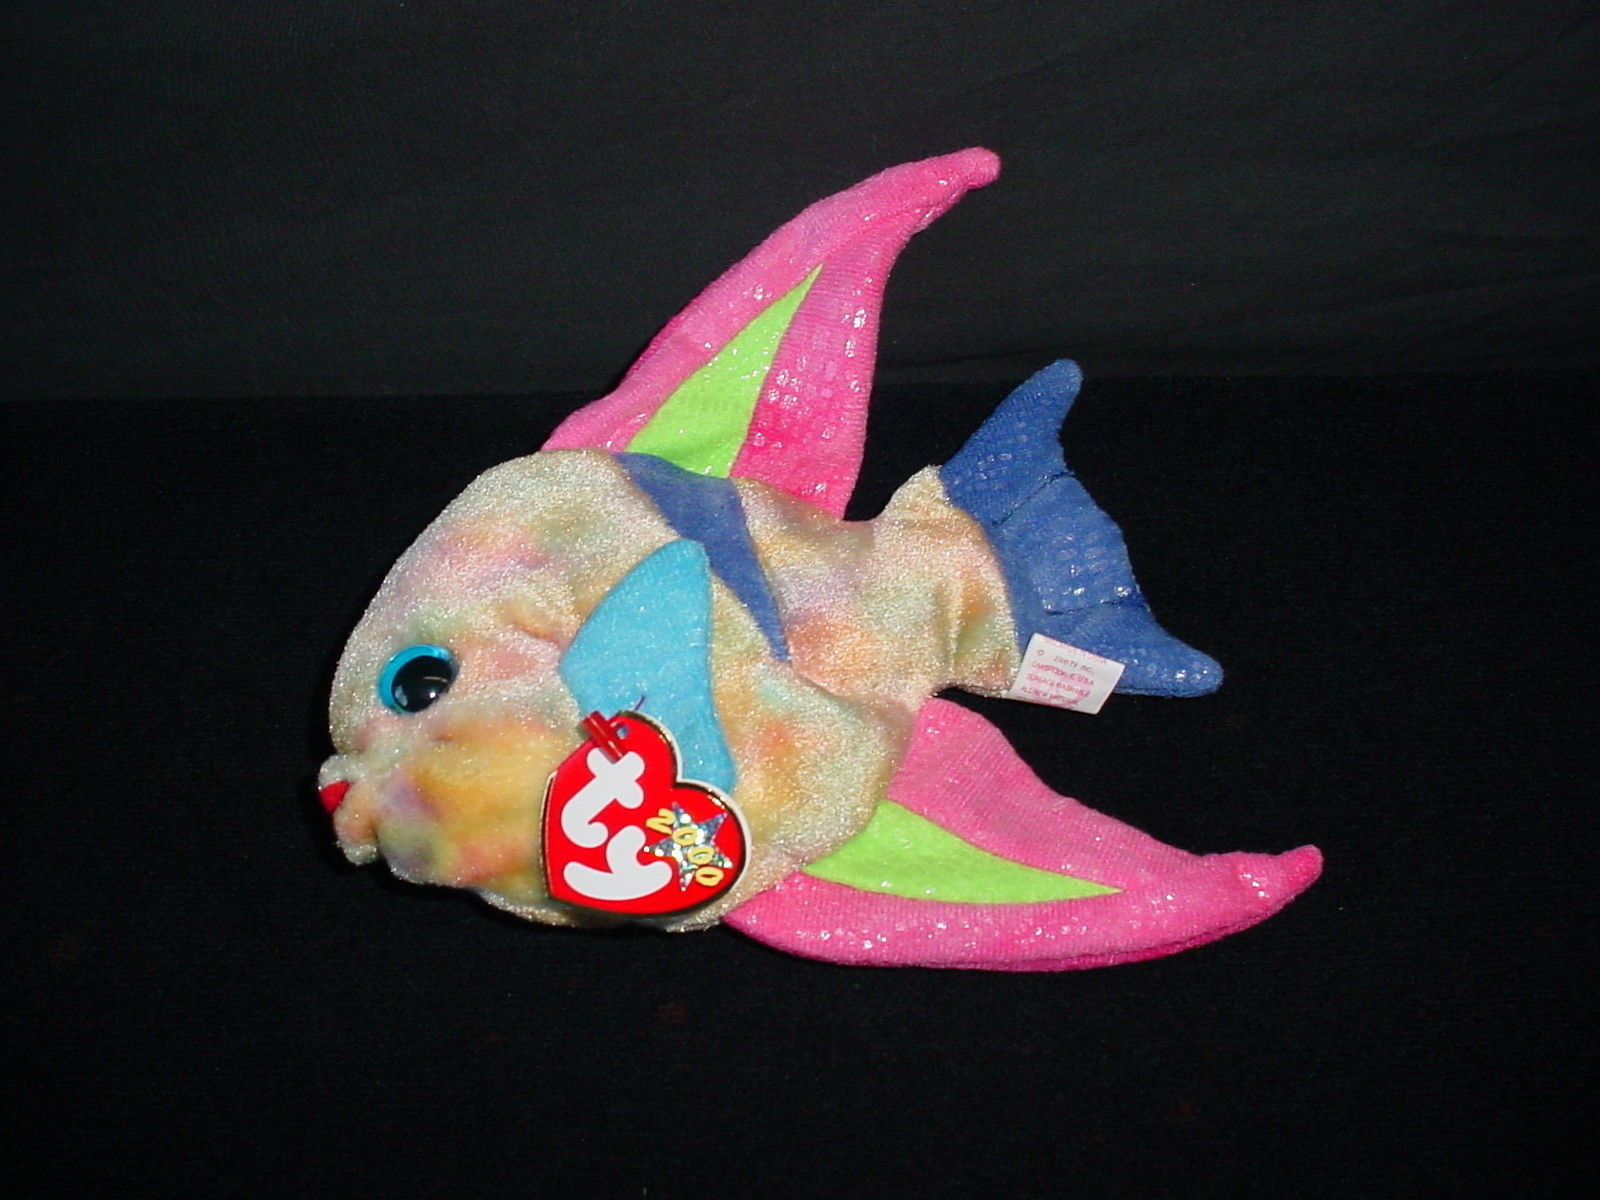 57. 57. Ty Beanie Babies Aruba Fish Retired Original Plush Baby Toy NWT Tag  New 2000. Free Shipping 0206e7d17fd3